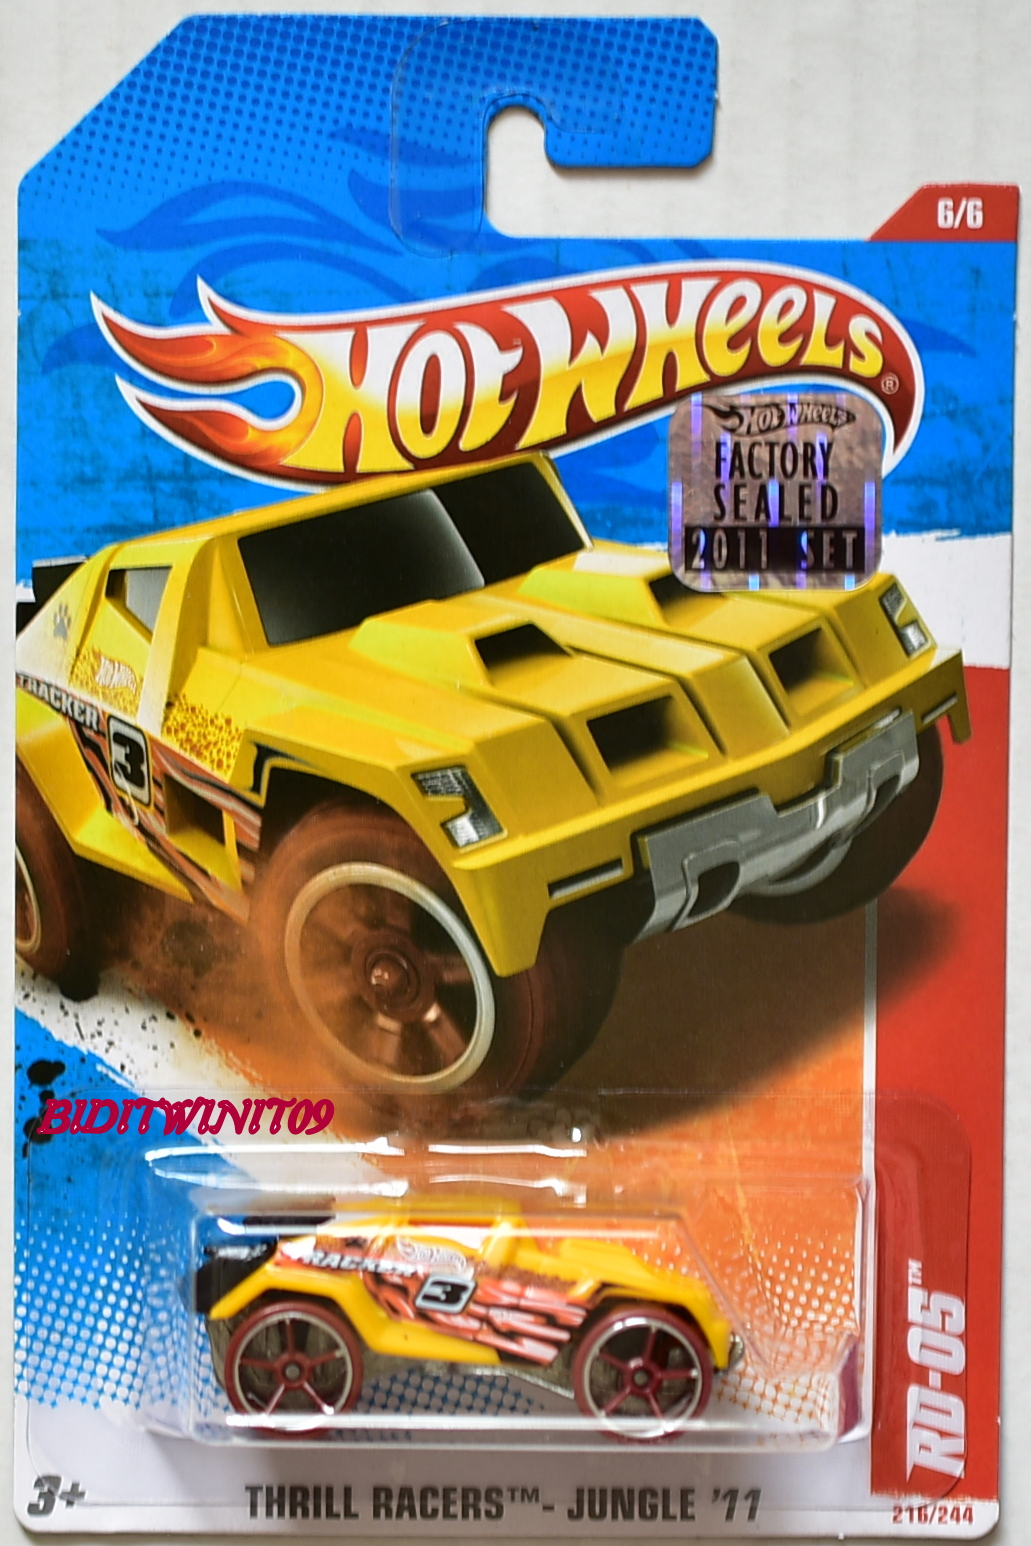 HOT WHEELS 2011 THRILL RACERS - JUNGLE RD-05 #6/6 FACTORY SEALED